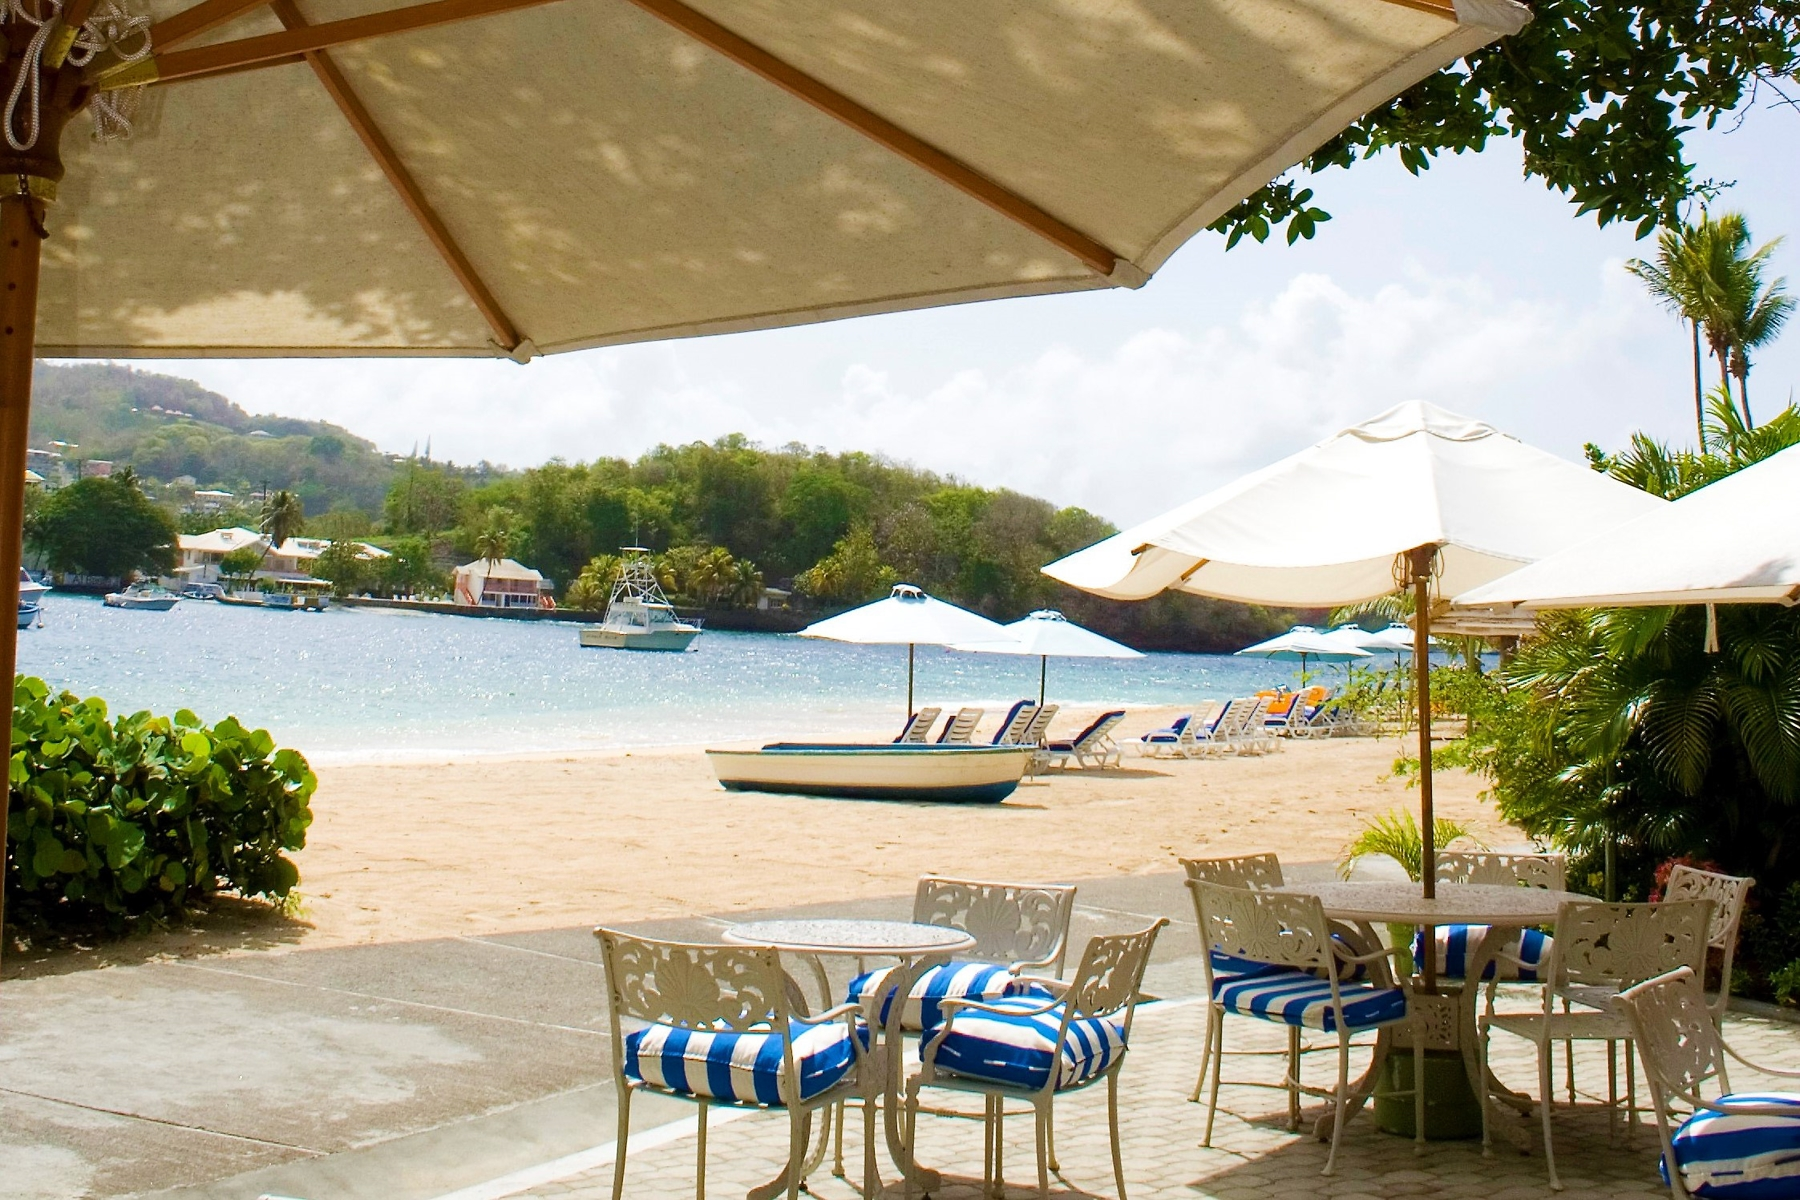 Additional photo for property listing at Young Island Resort - Private Island Young Island, Saint Vincent And The Grenadines